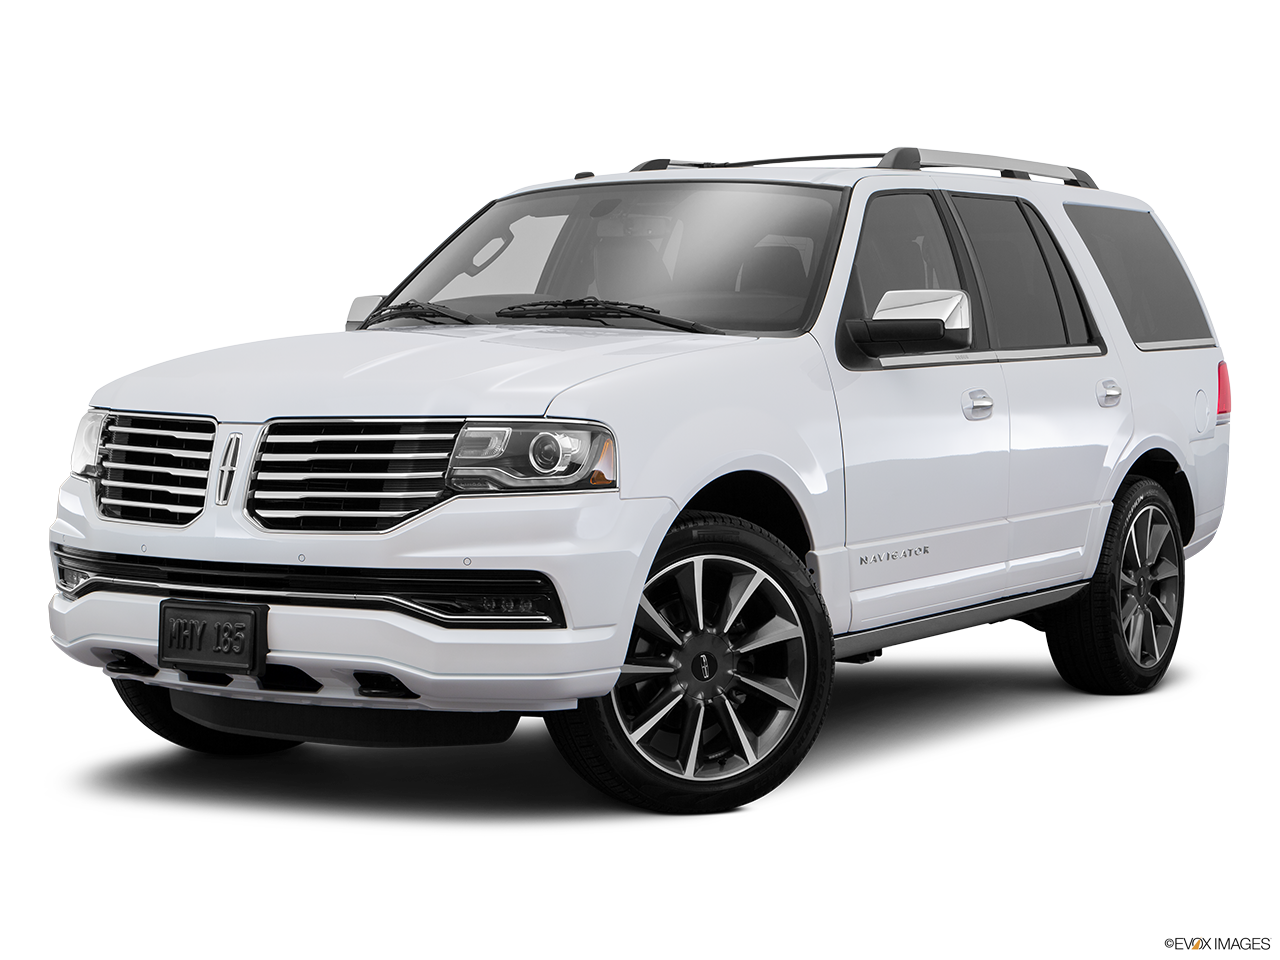 Test Drive A 2016 Lincoln Navigator at Galpin Lincoln in Los Angeles